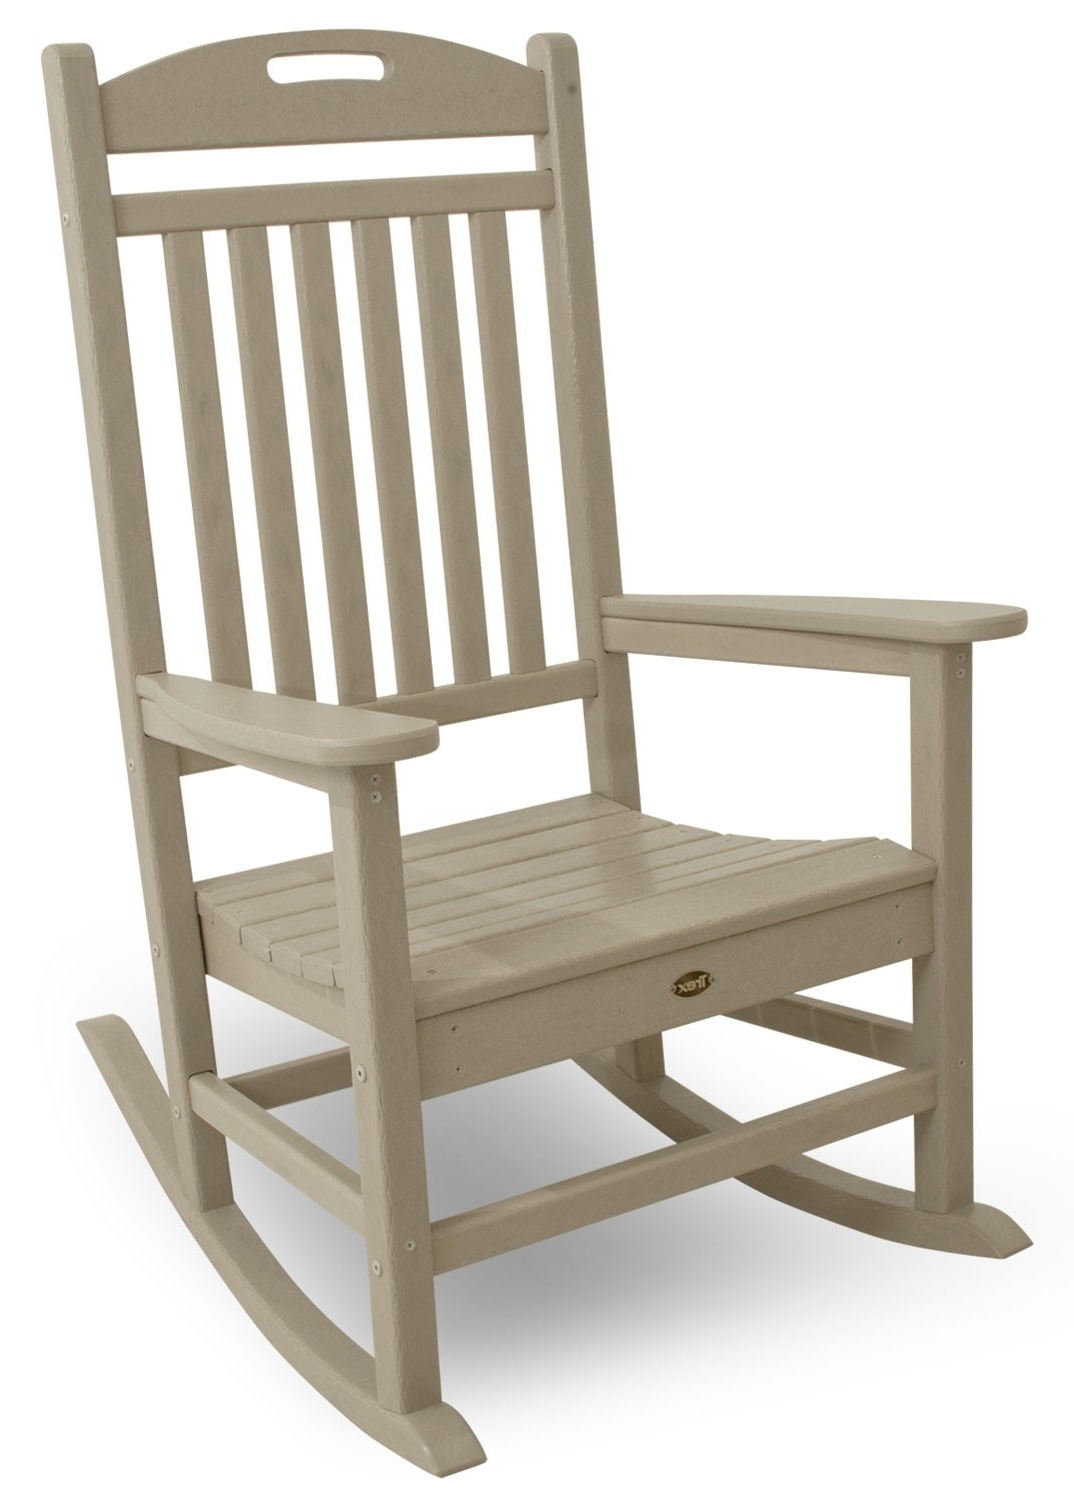 Most Recently Released Yacht Club Rocking Chair Inside Rocking Chairs (View 5 of 15)